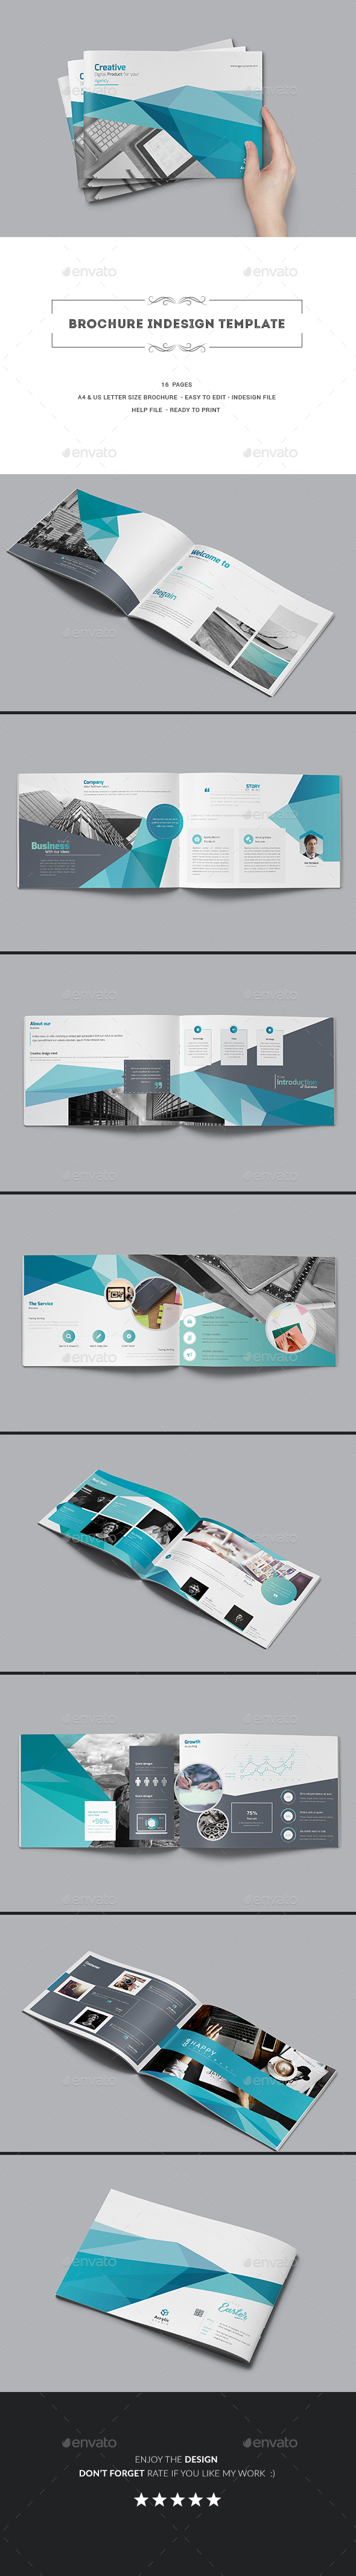 GraphicRiver Brochure Indesign Template 20388555